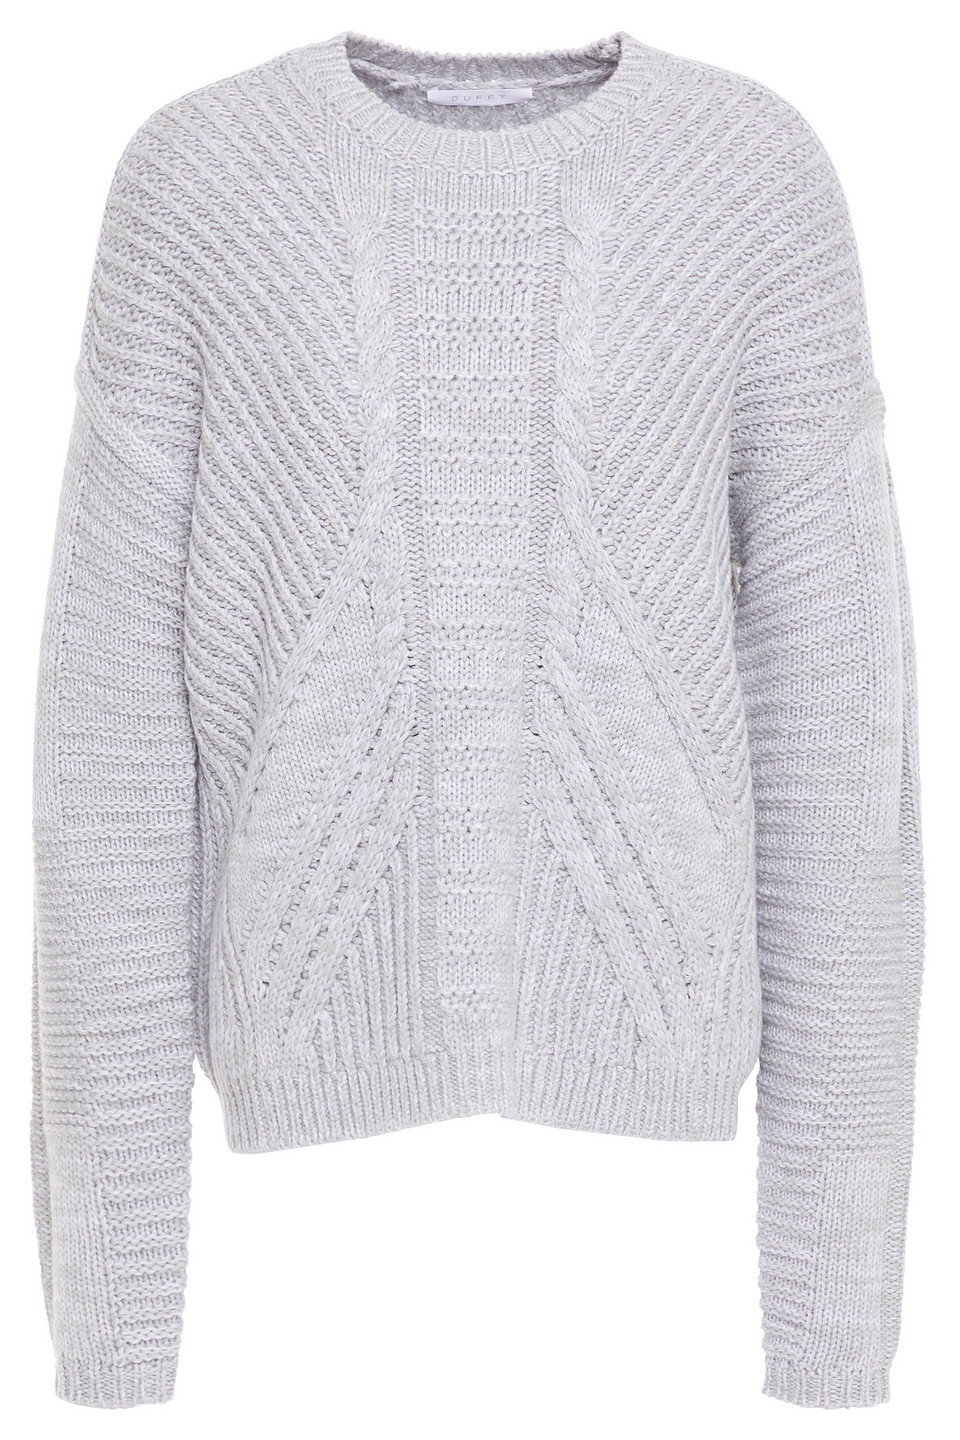 Duffy | Duffy Woman Cable-knit Merino Wool Sweater Light Gray | Clouty